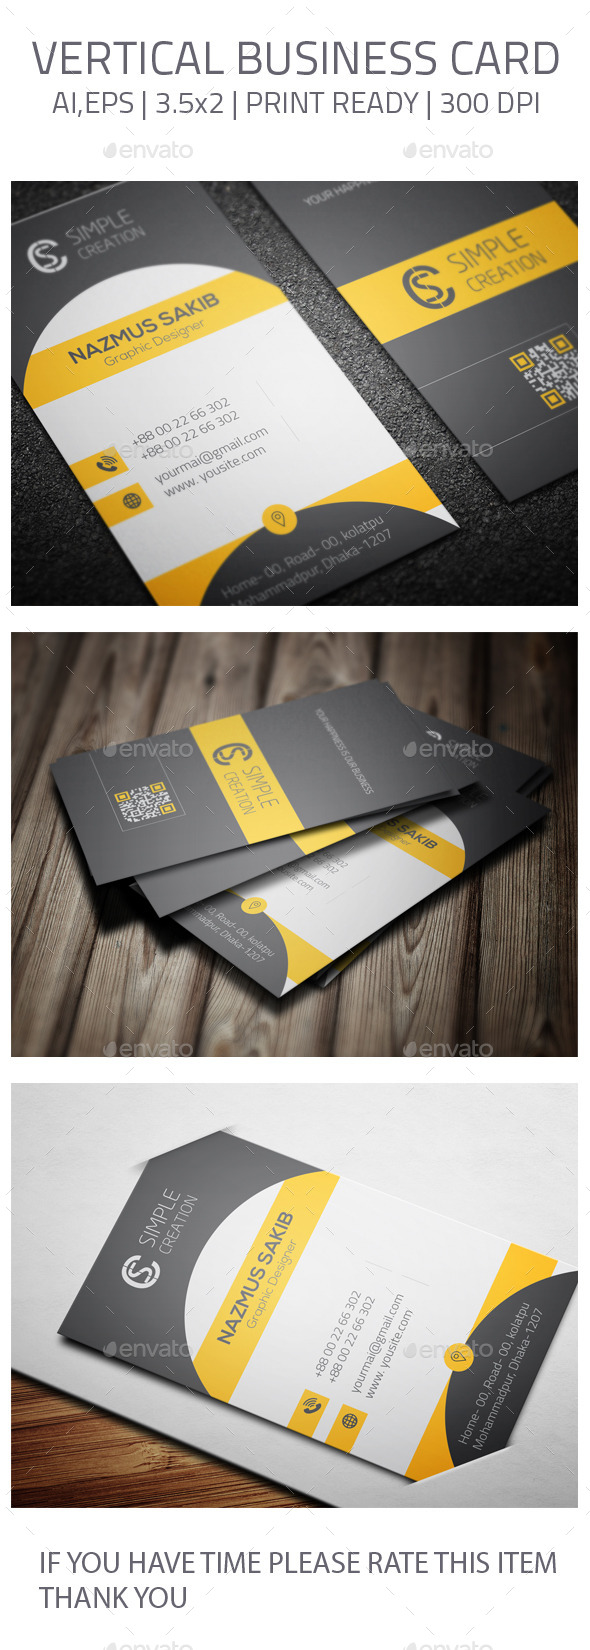 vertical business card 07 graphicriver. Black Bedroom Furniture Sets. Home Design Ideas